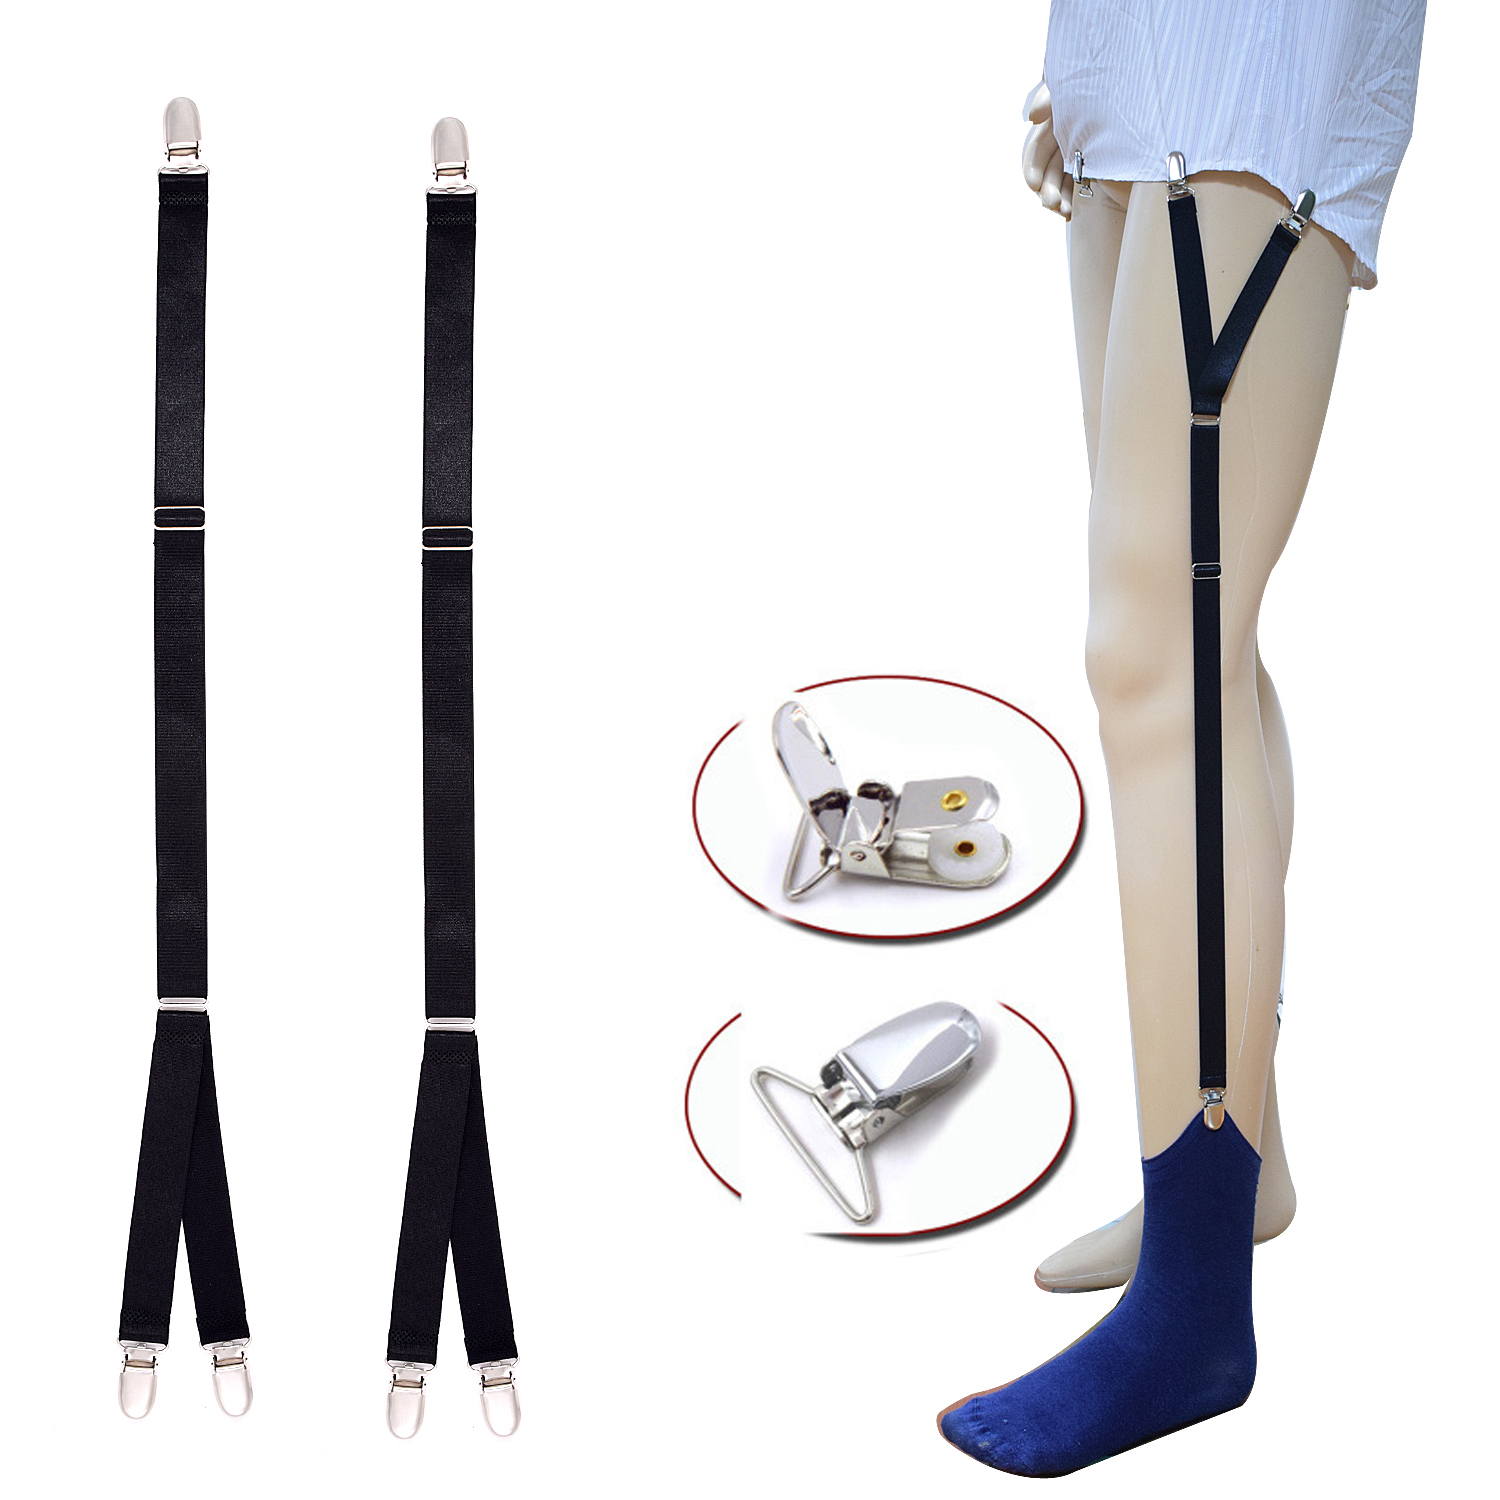 Mens Shirt Stays Garters Y Shape Adjustable Elastic Shirt Holders Tuckers Leg Suspenders Sock Clamps For Men Women Formal Wear